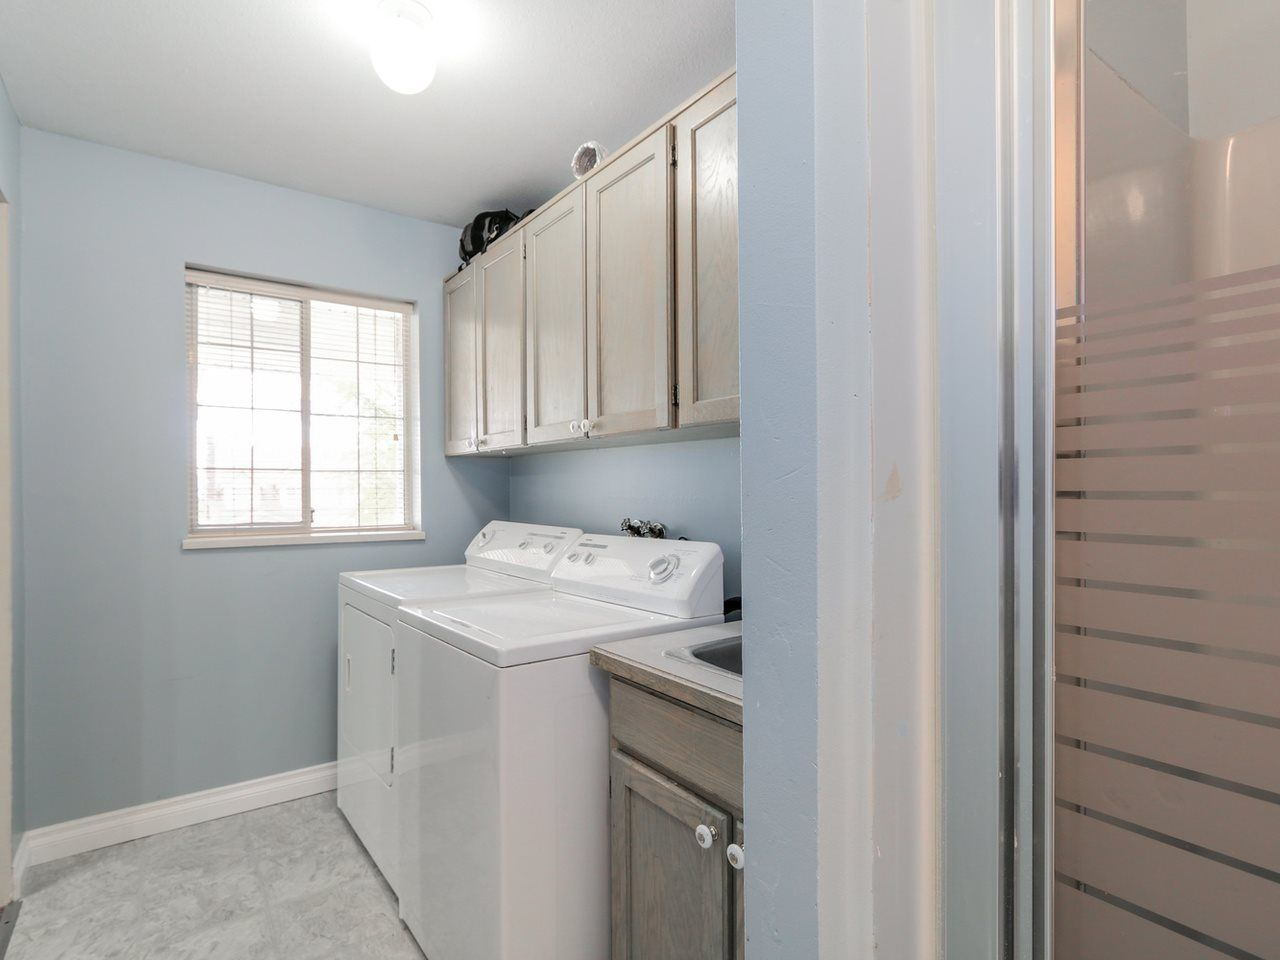 """Photo 20: Photos: 2559 BLUEBELL Avenue in Coquitlam: Summitt View House for sale in """"SUMMITT VIEW"""" : MLS®# R2064204"""